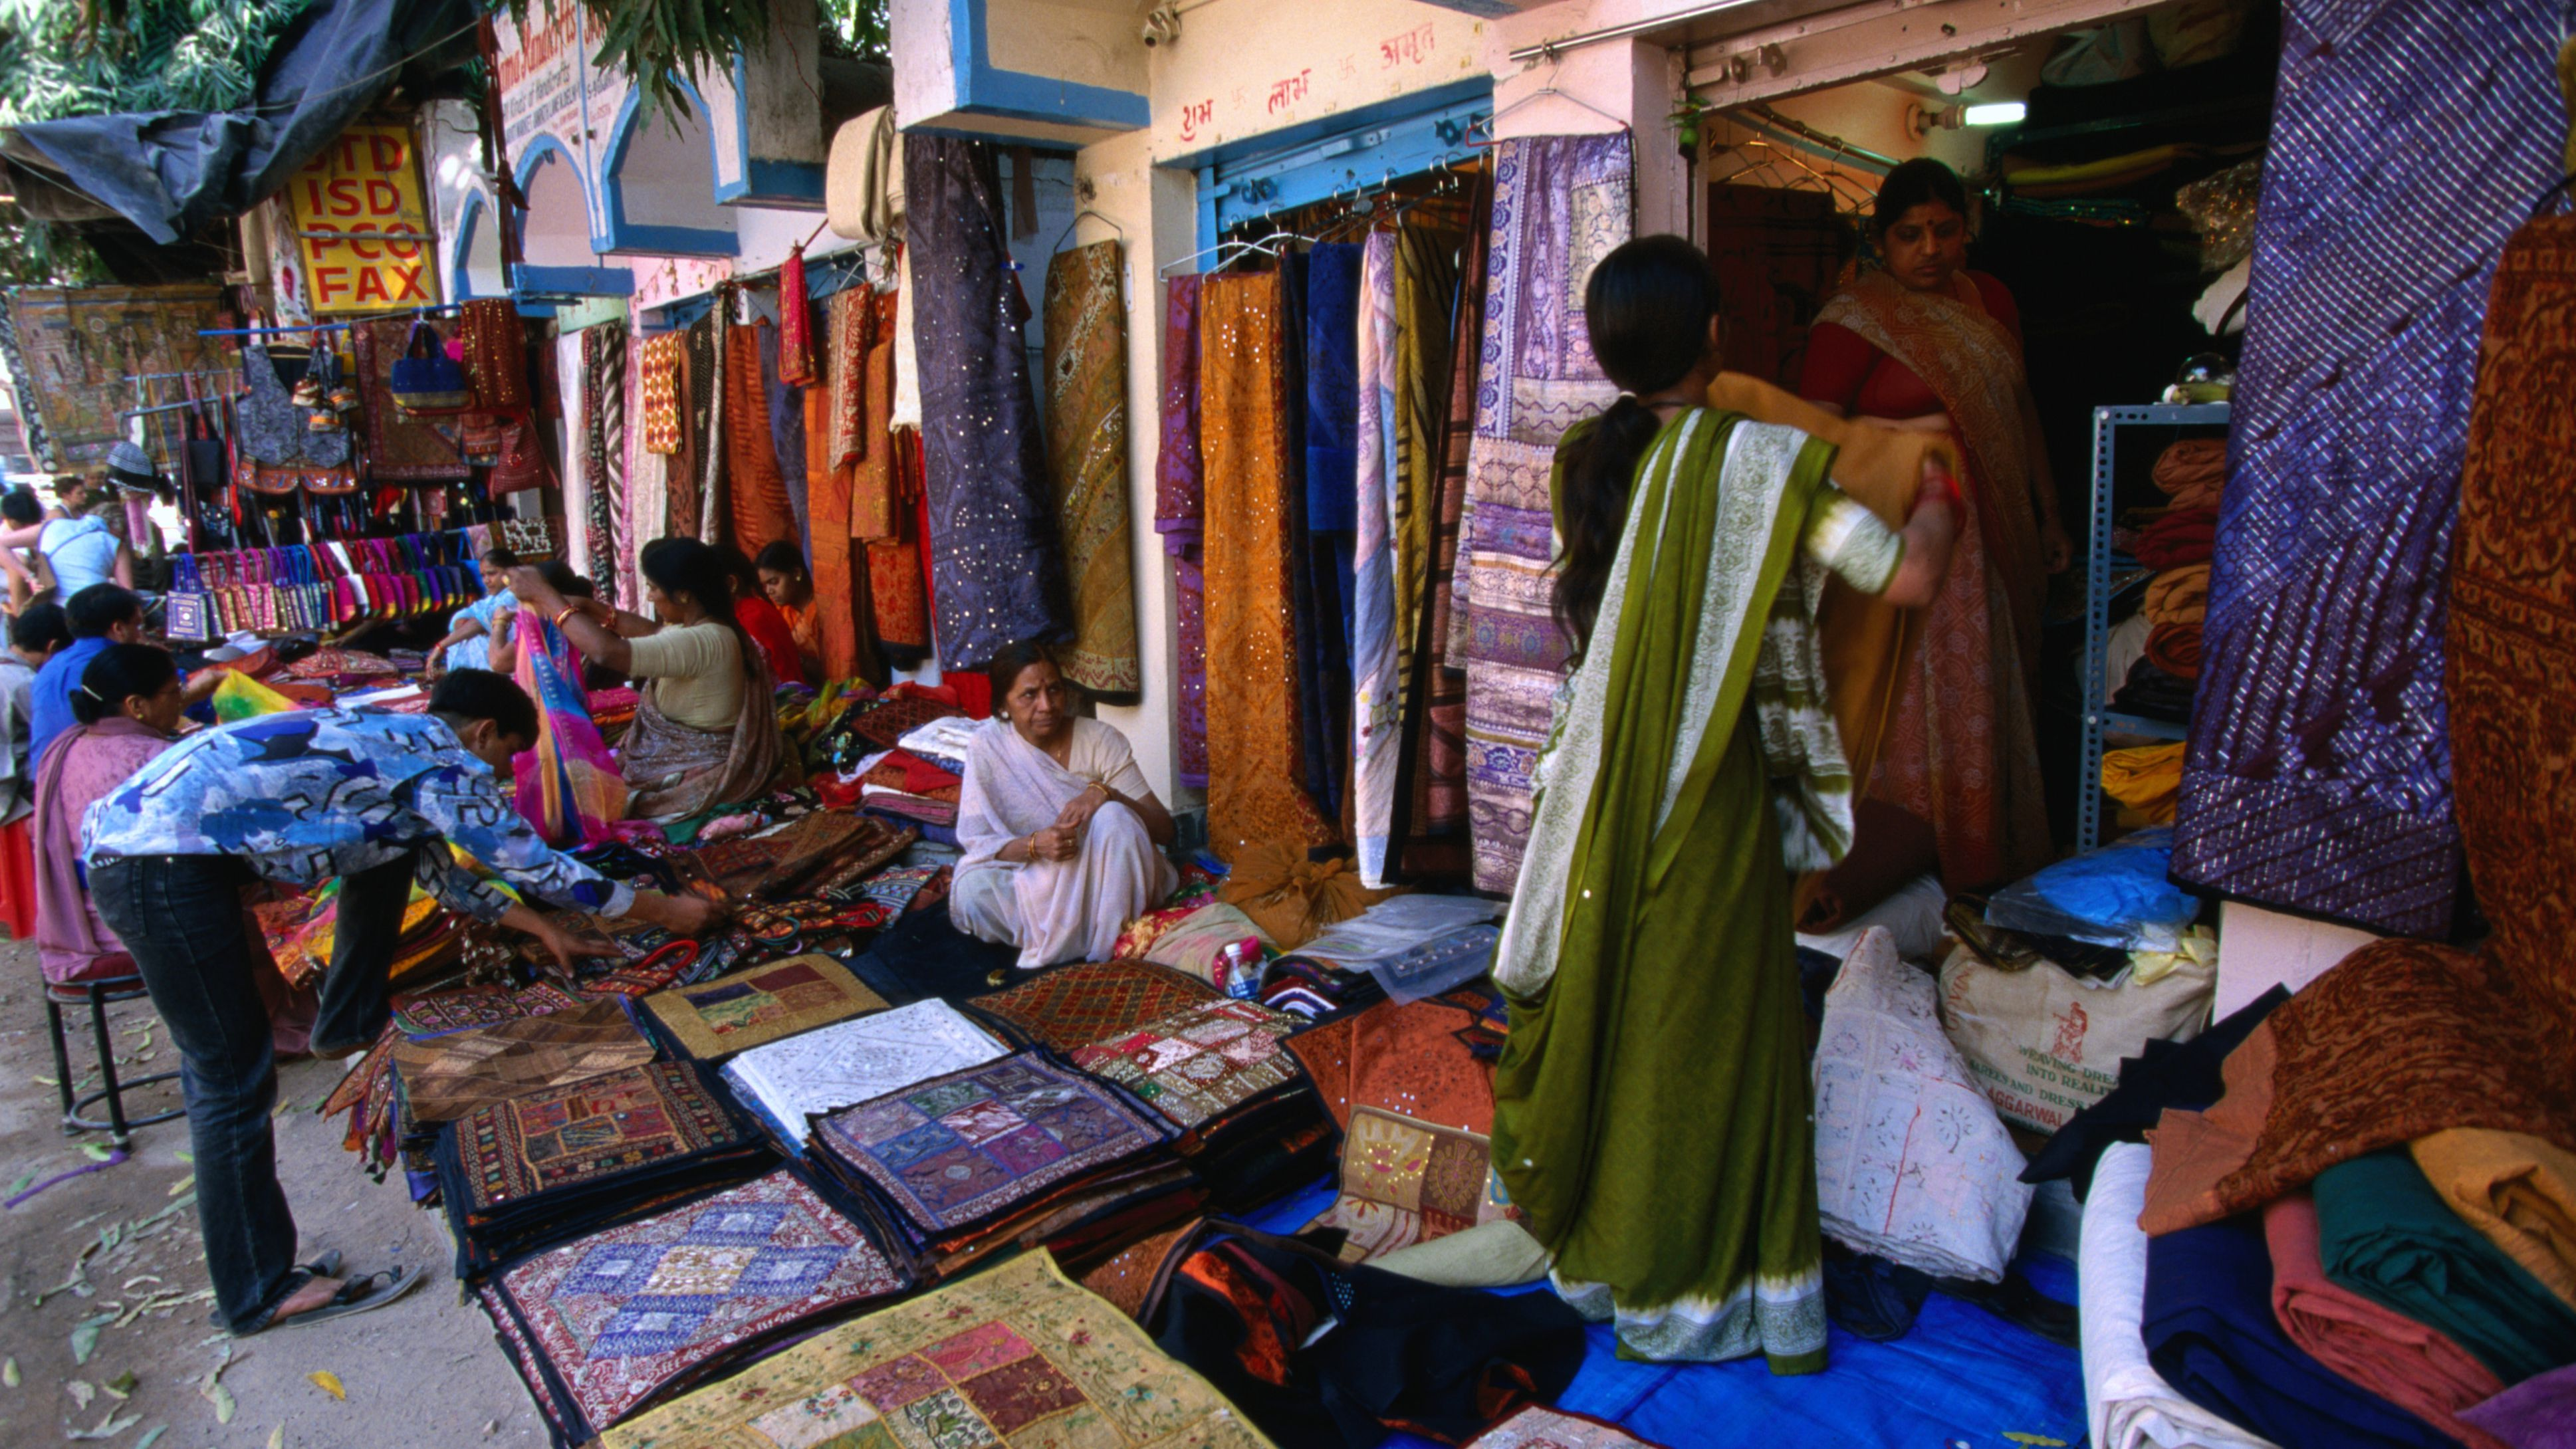 15 Best Delhi Markets For Shopping And What You Can Buy